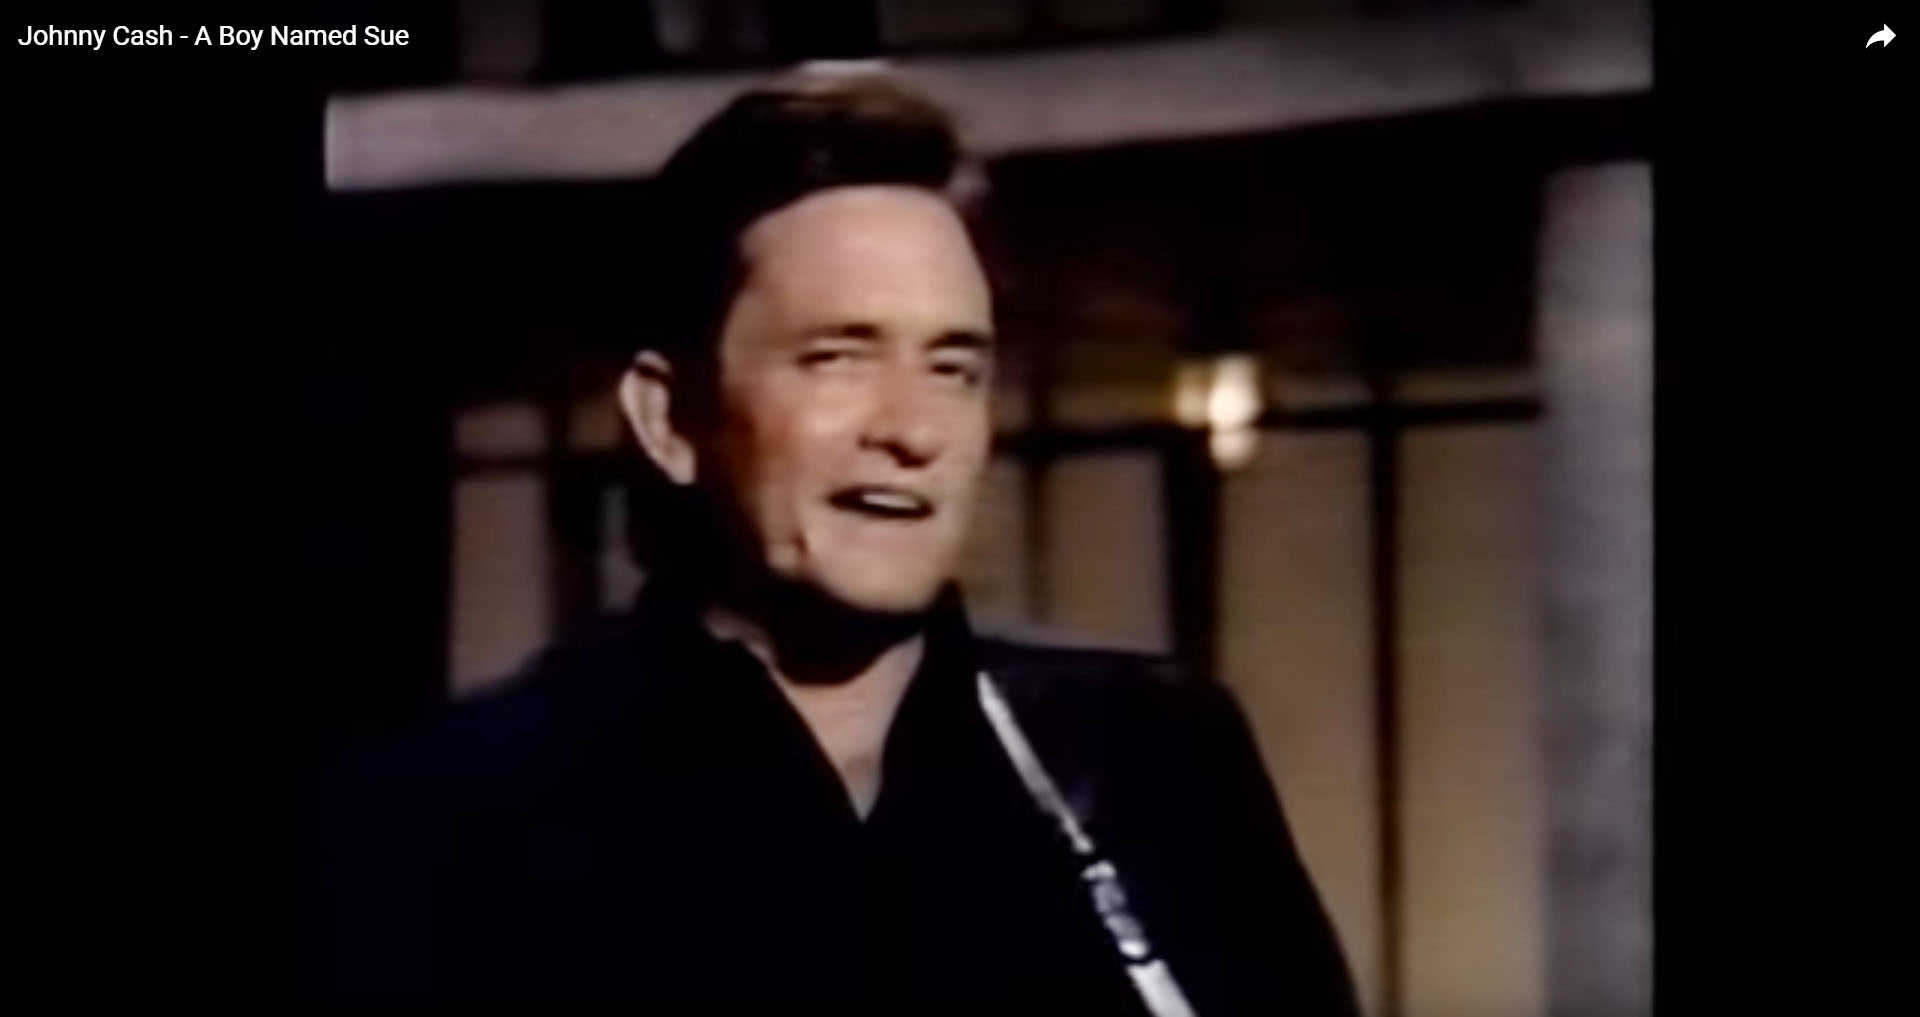 Shortcut Youtube-Video Johnny Cash